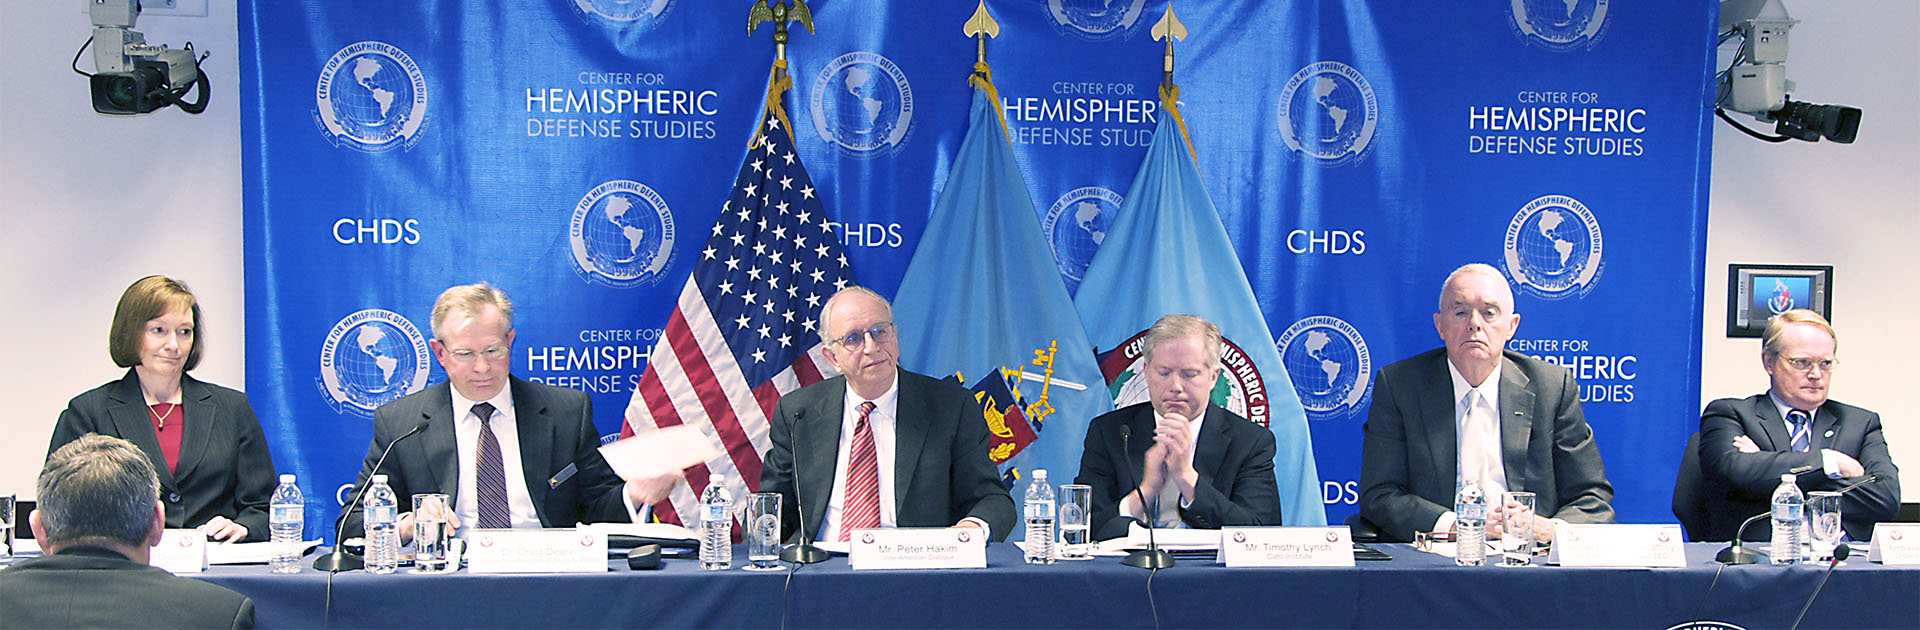 Hemispheric Forum Panel